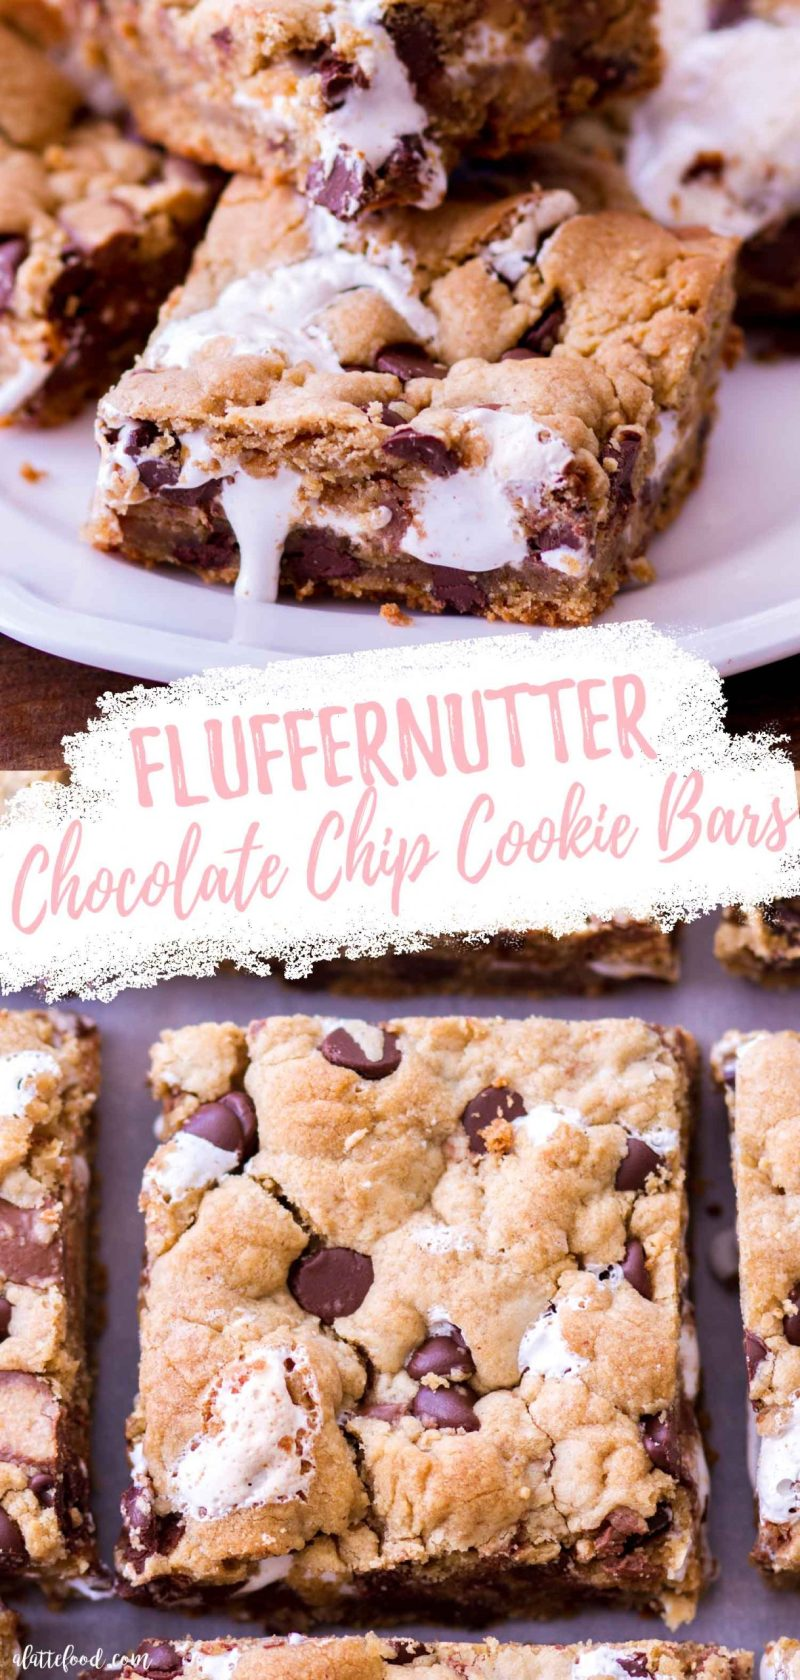 marshmallow stuffed peanut butter chocolate chip cookie bars